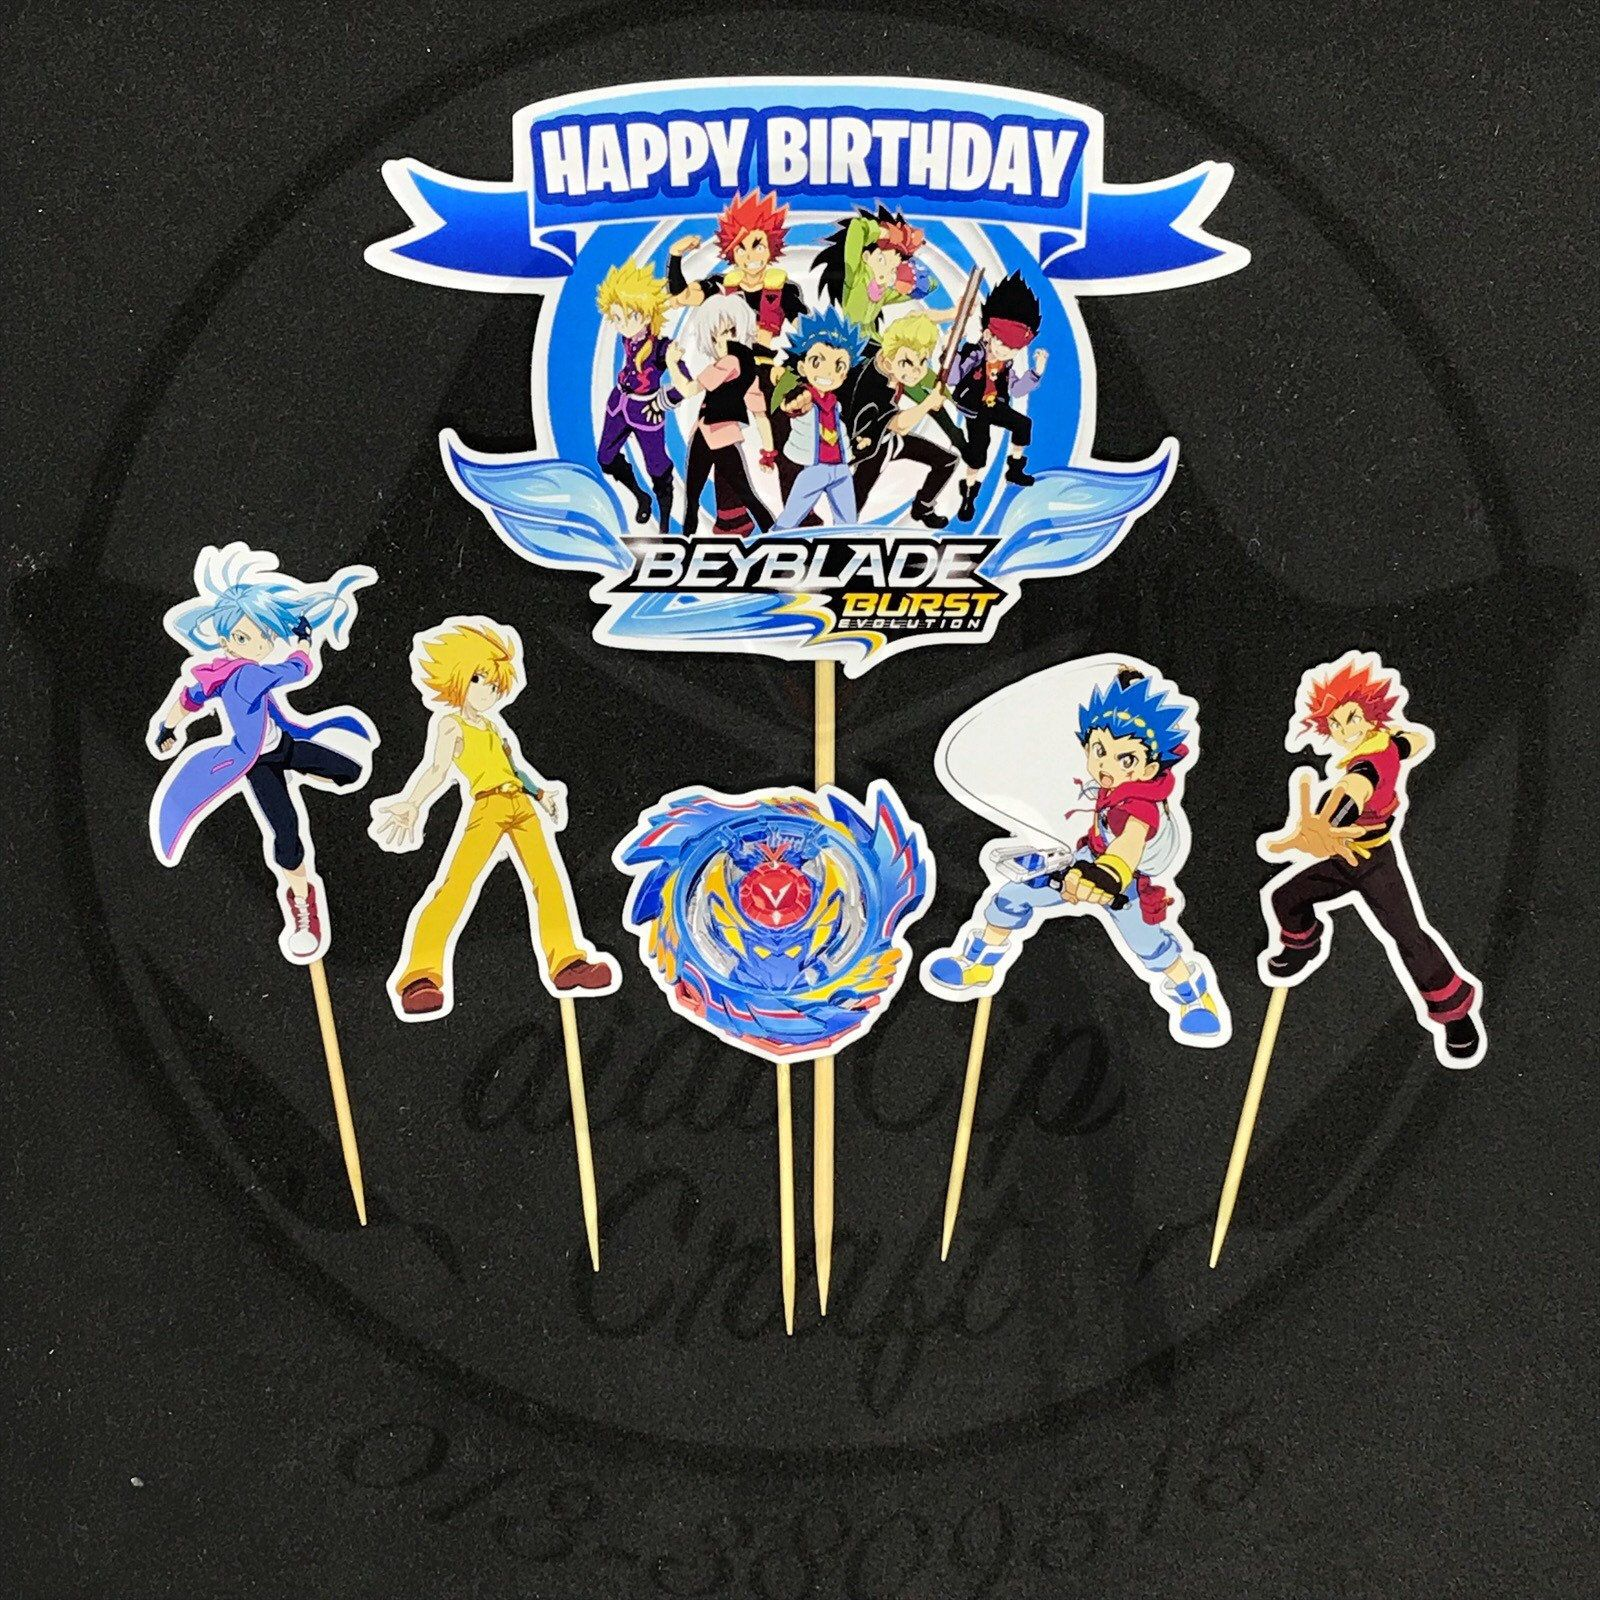 Special Offer Personalise Beyblade Burst Cake Topper Template With Digital Beyblade Birthday Party Banner In 2021 Beyblade Cake Beyblade Birthday Party Beyblade Birthday